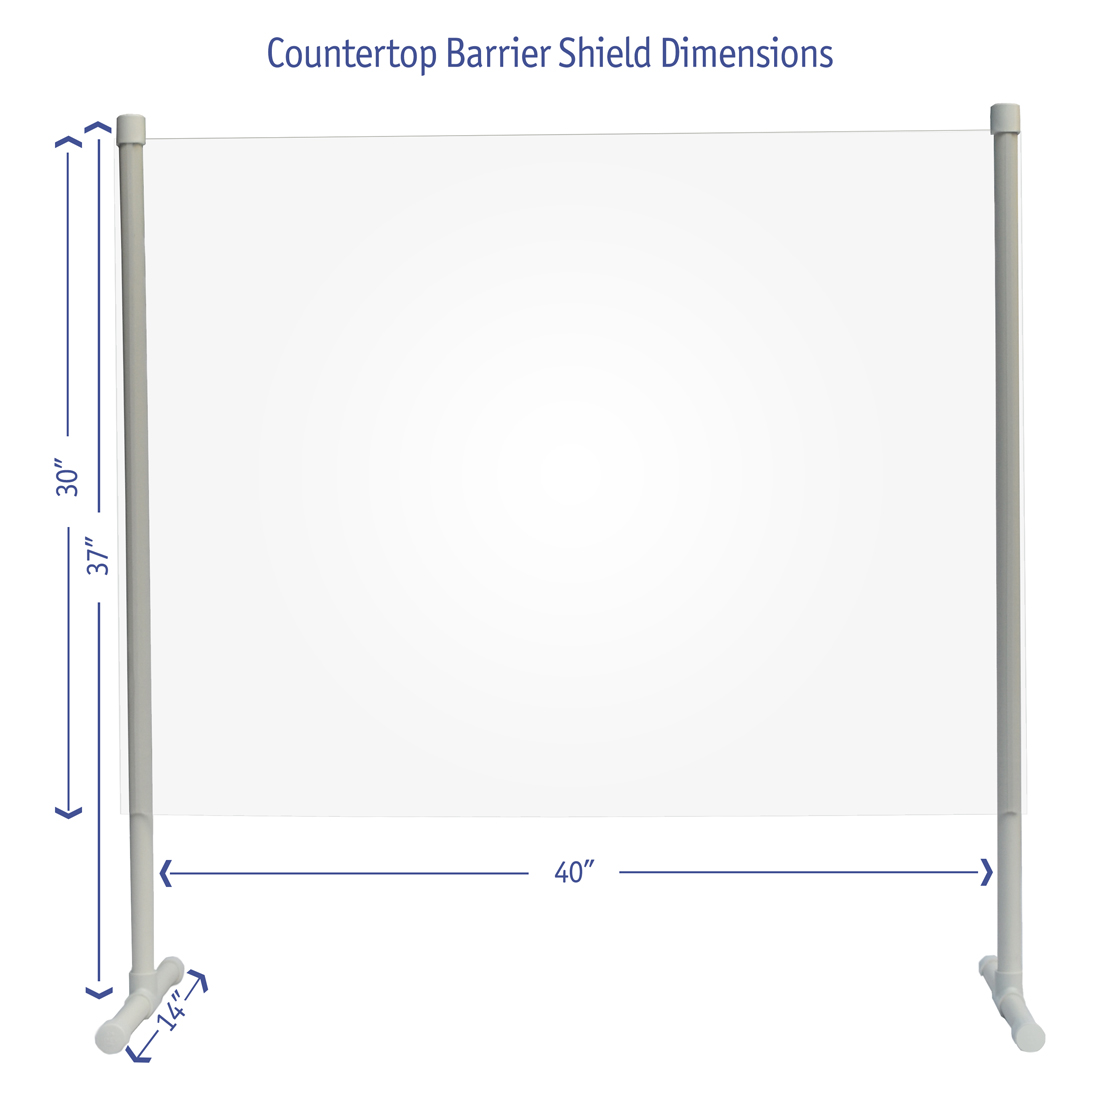 Countertop barrier shield dimensions image